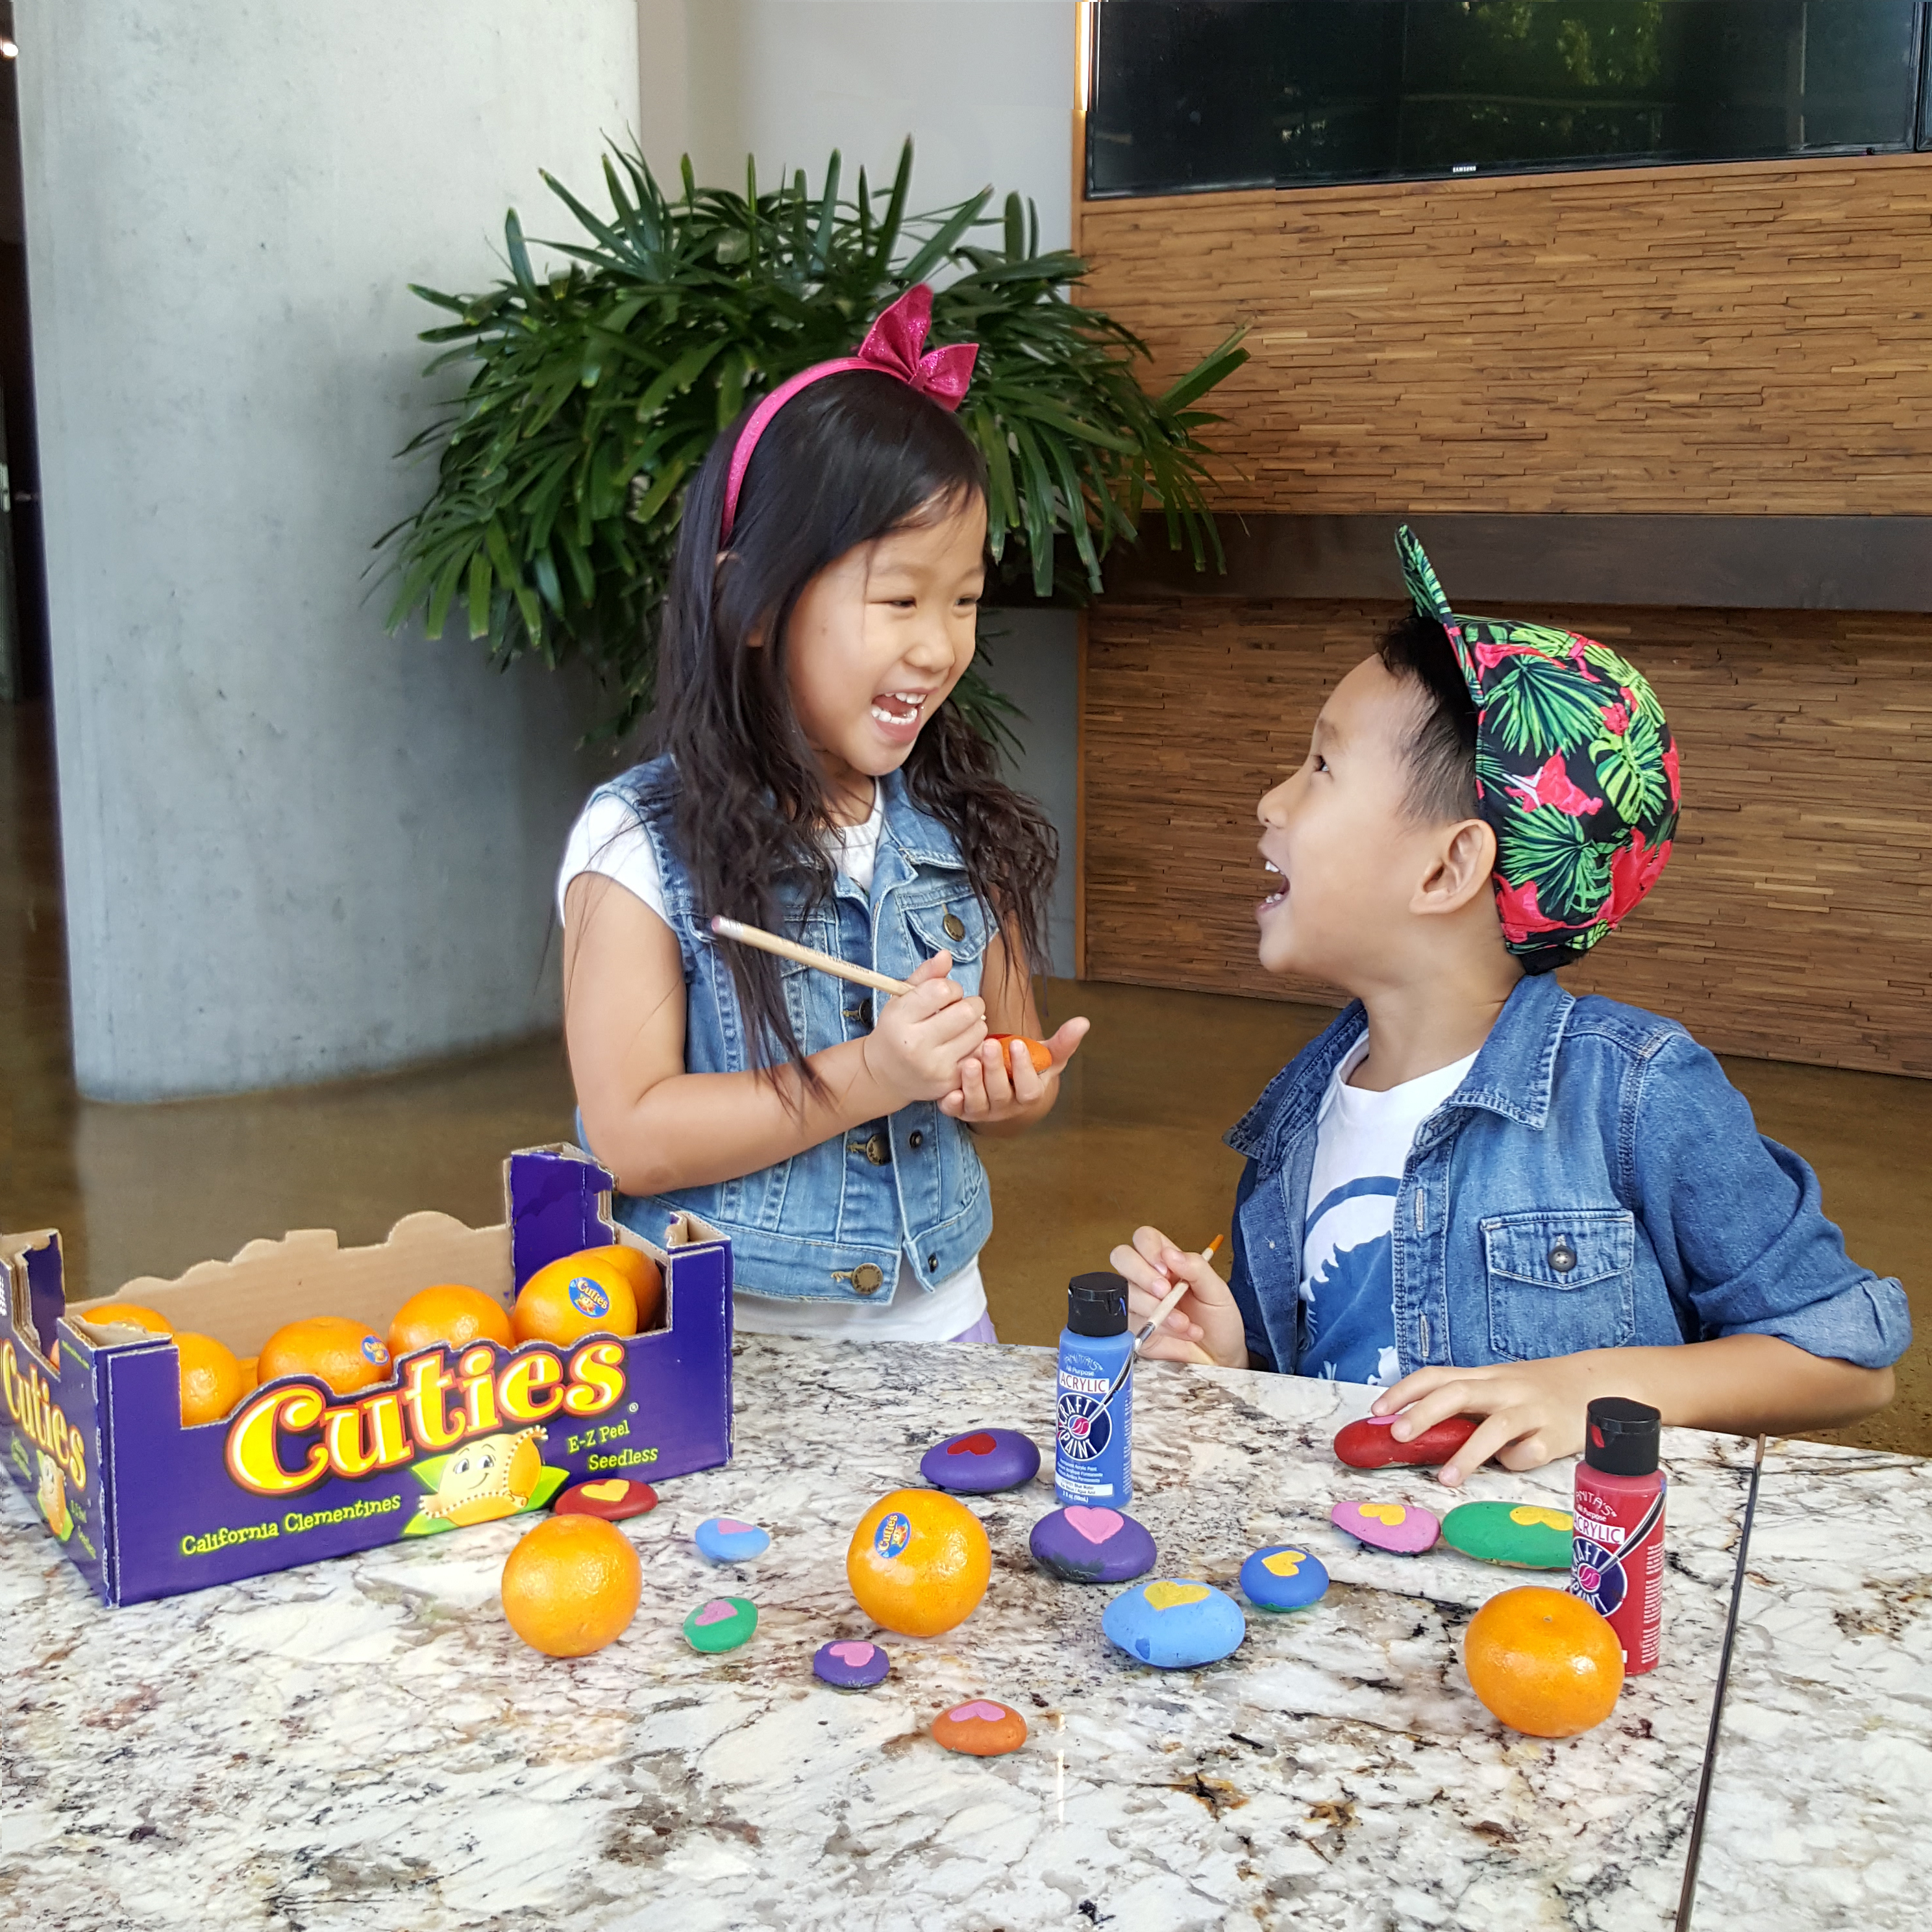 100 Days of Sunshine Cuties Fruit Healthy The Hustling Mama Kids Crafts Joy Rocks DIY Collaboration Partnership Influencer